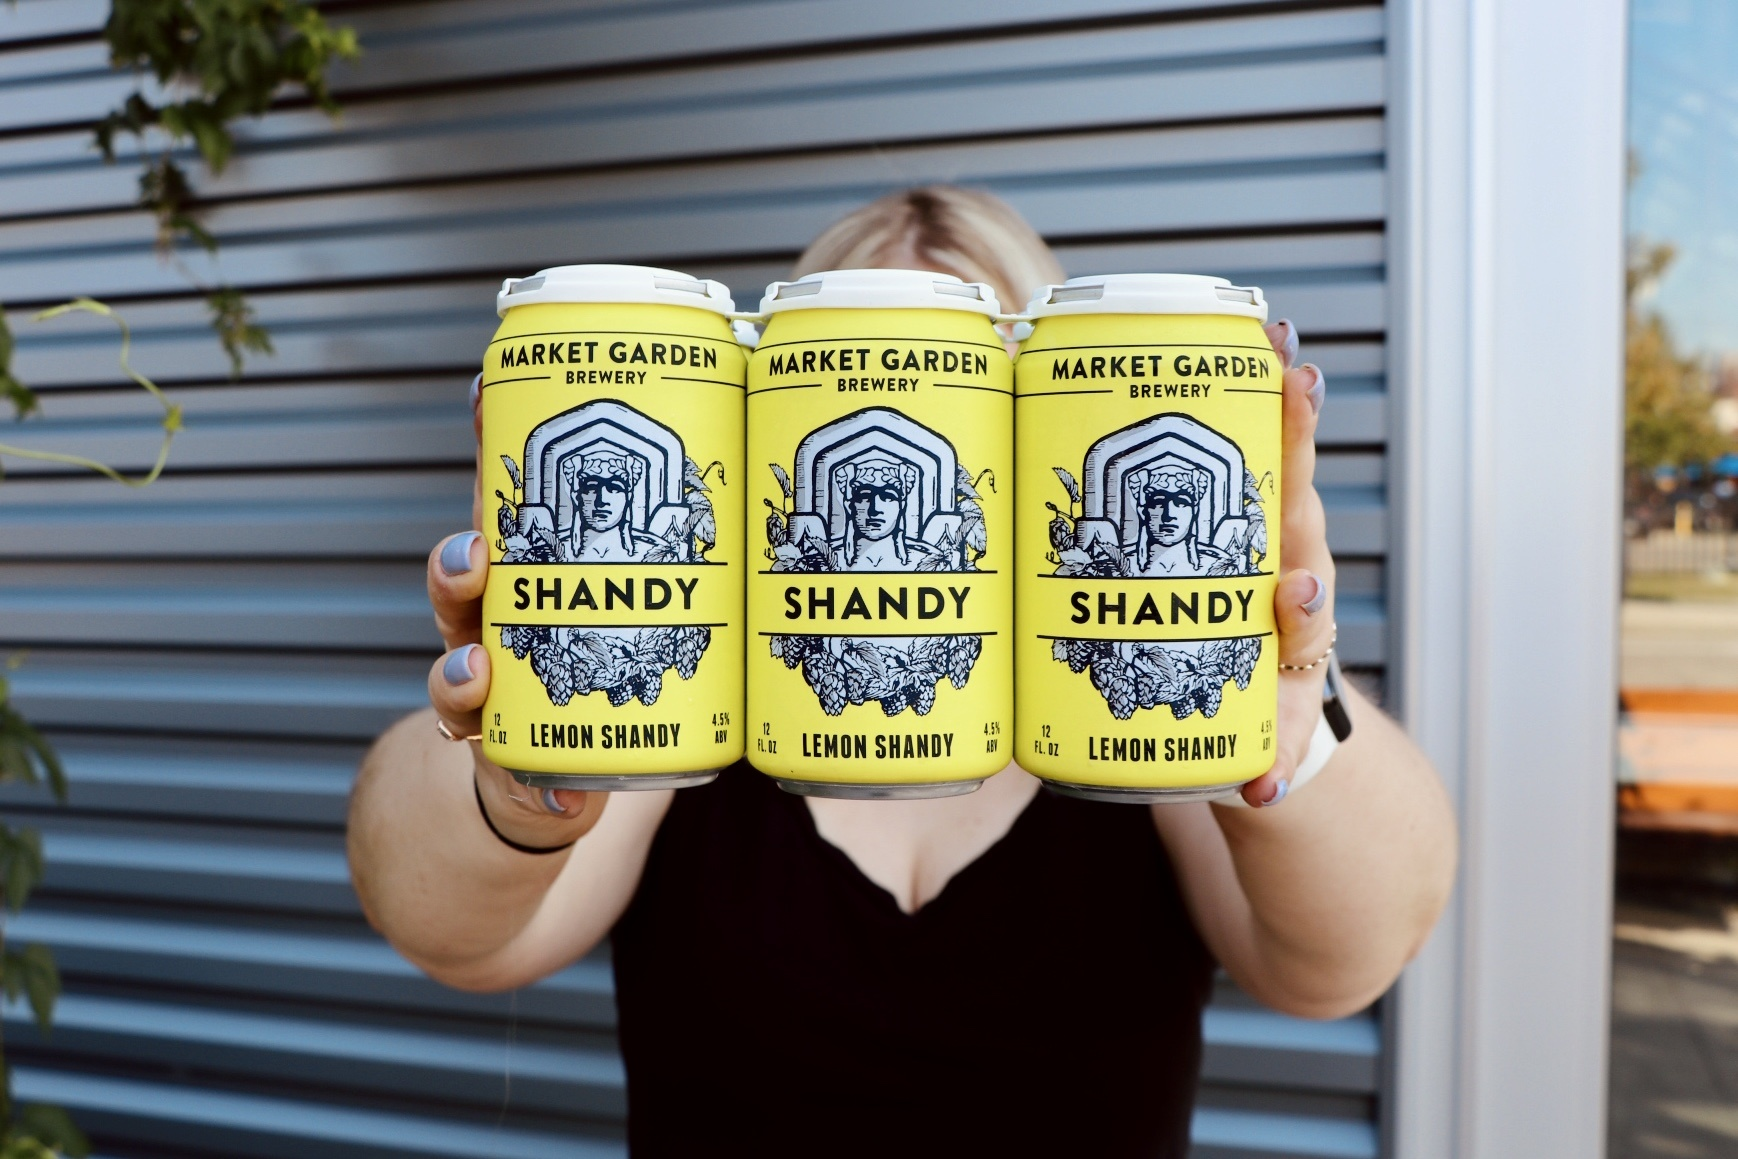 Shandy Lemon Shandy 6-Pack (cans)